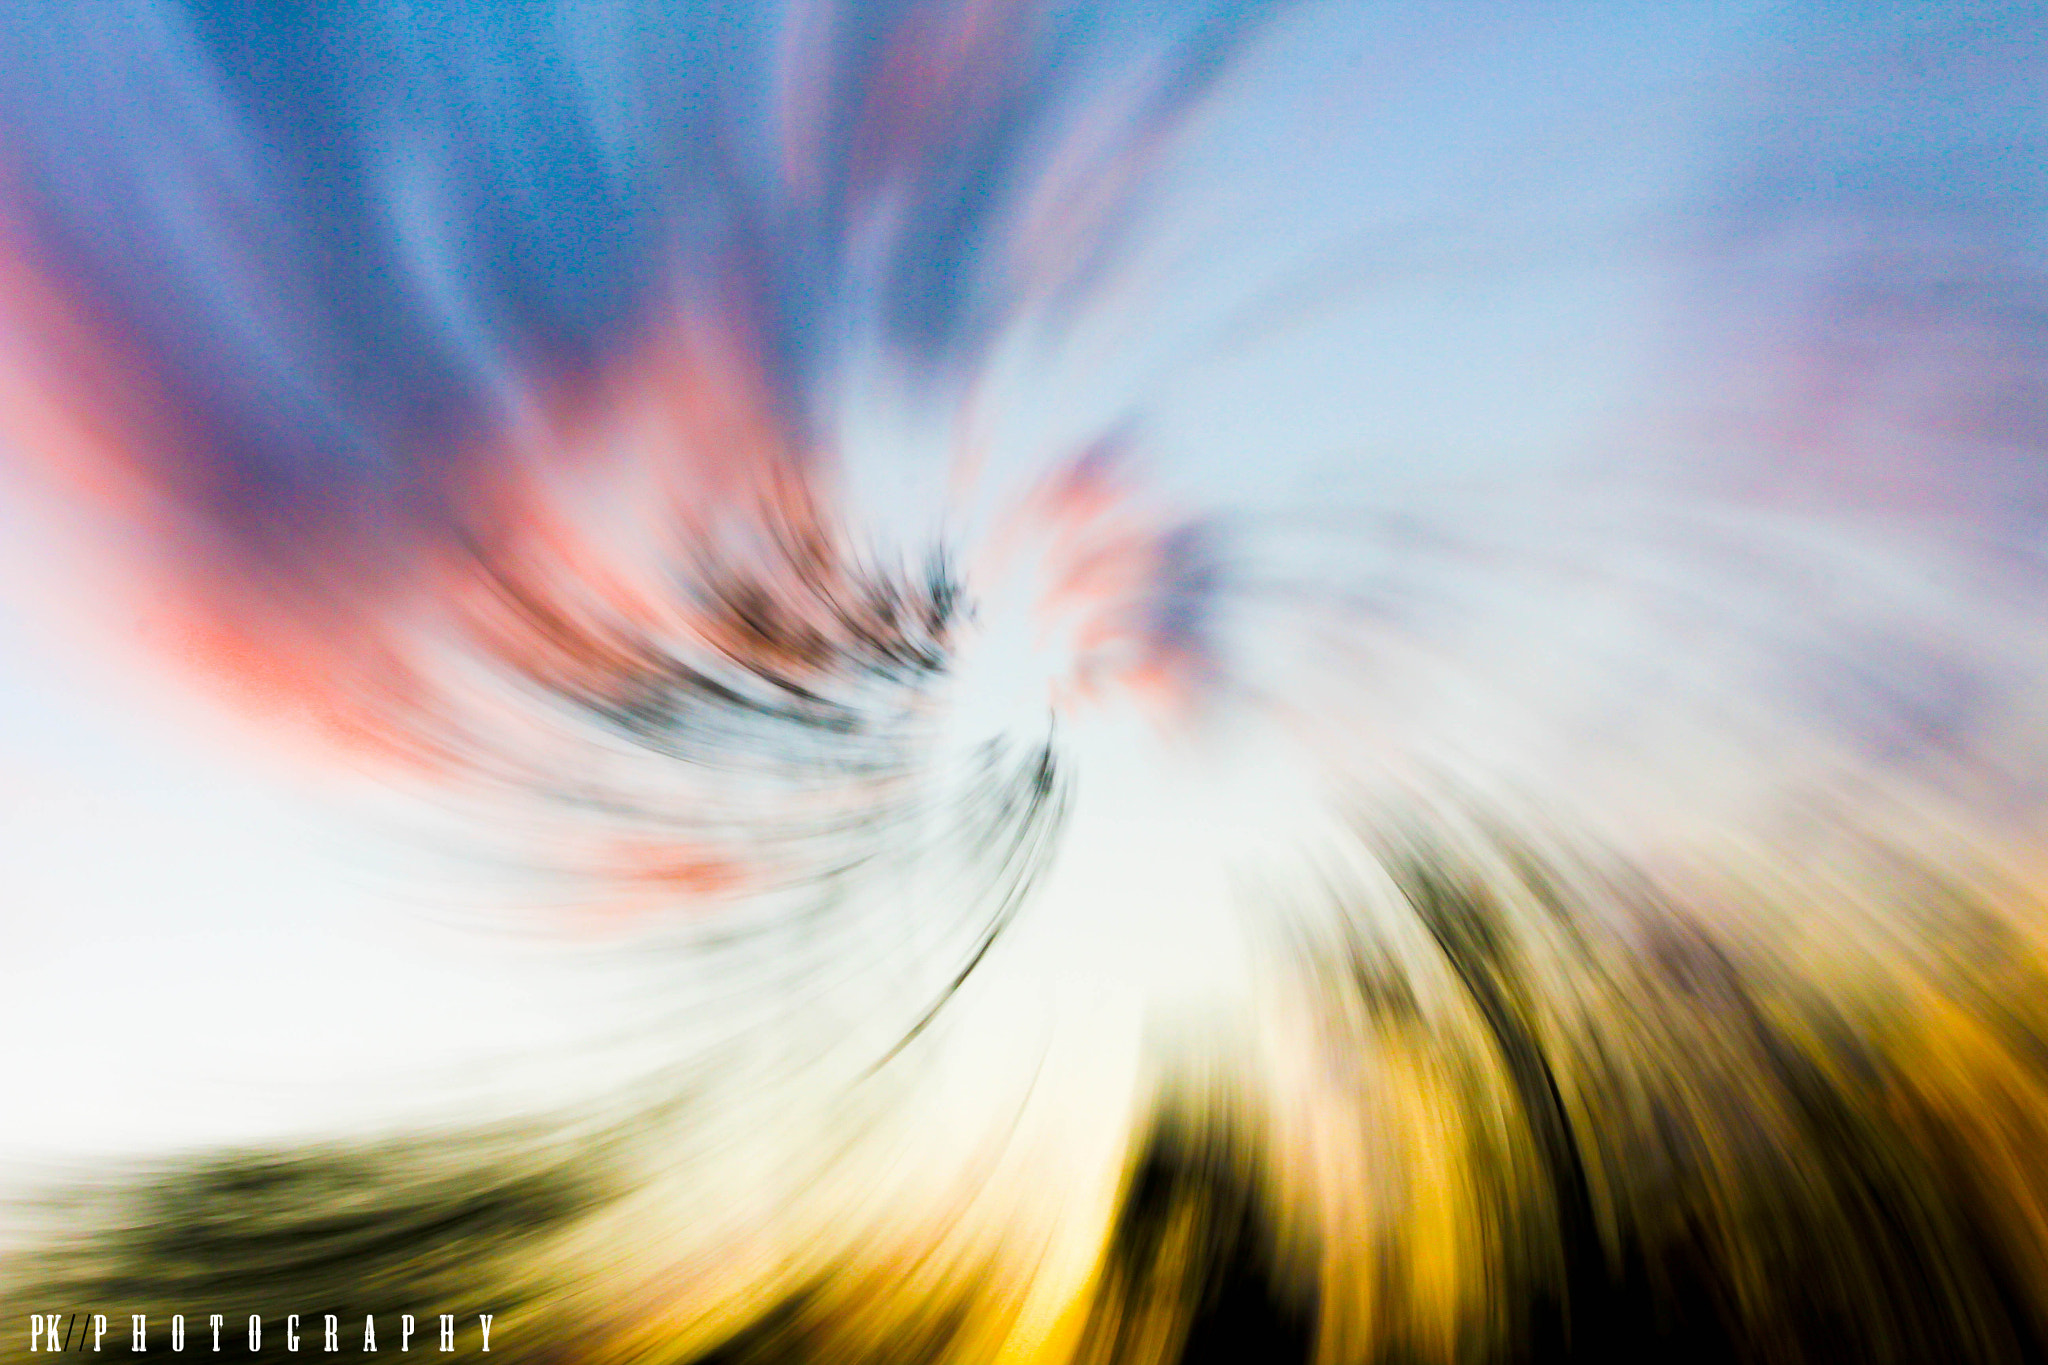 Photograph Twist + zoom by Pran Kositthanakorn  on 500px